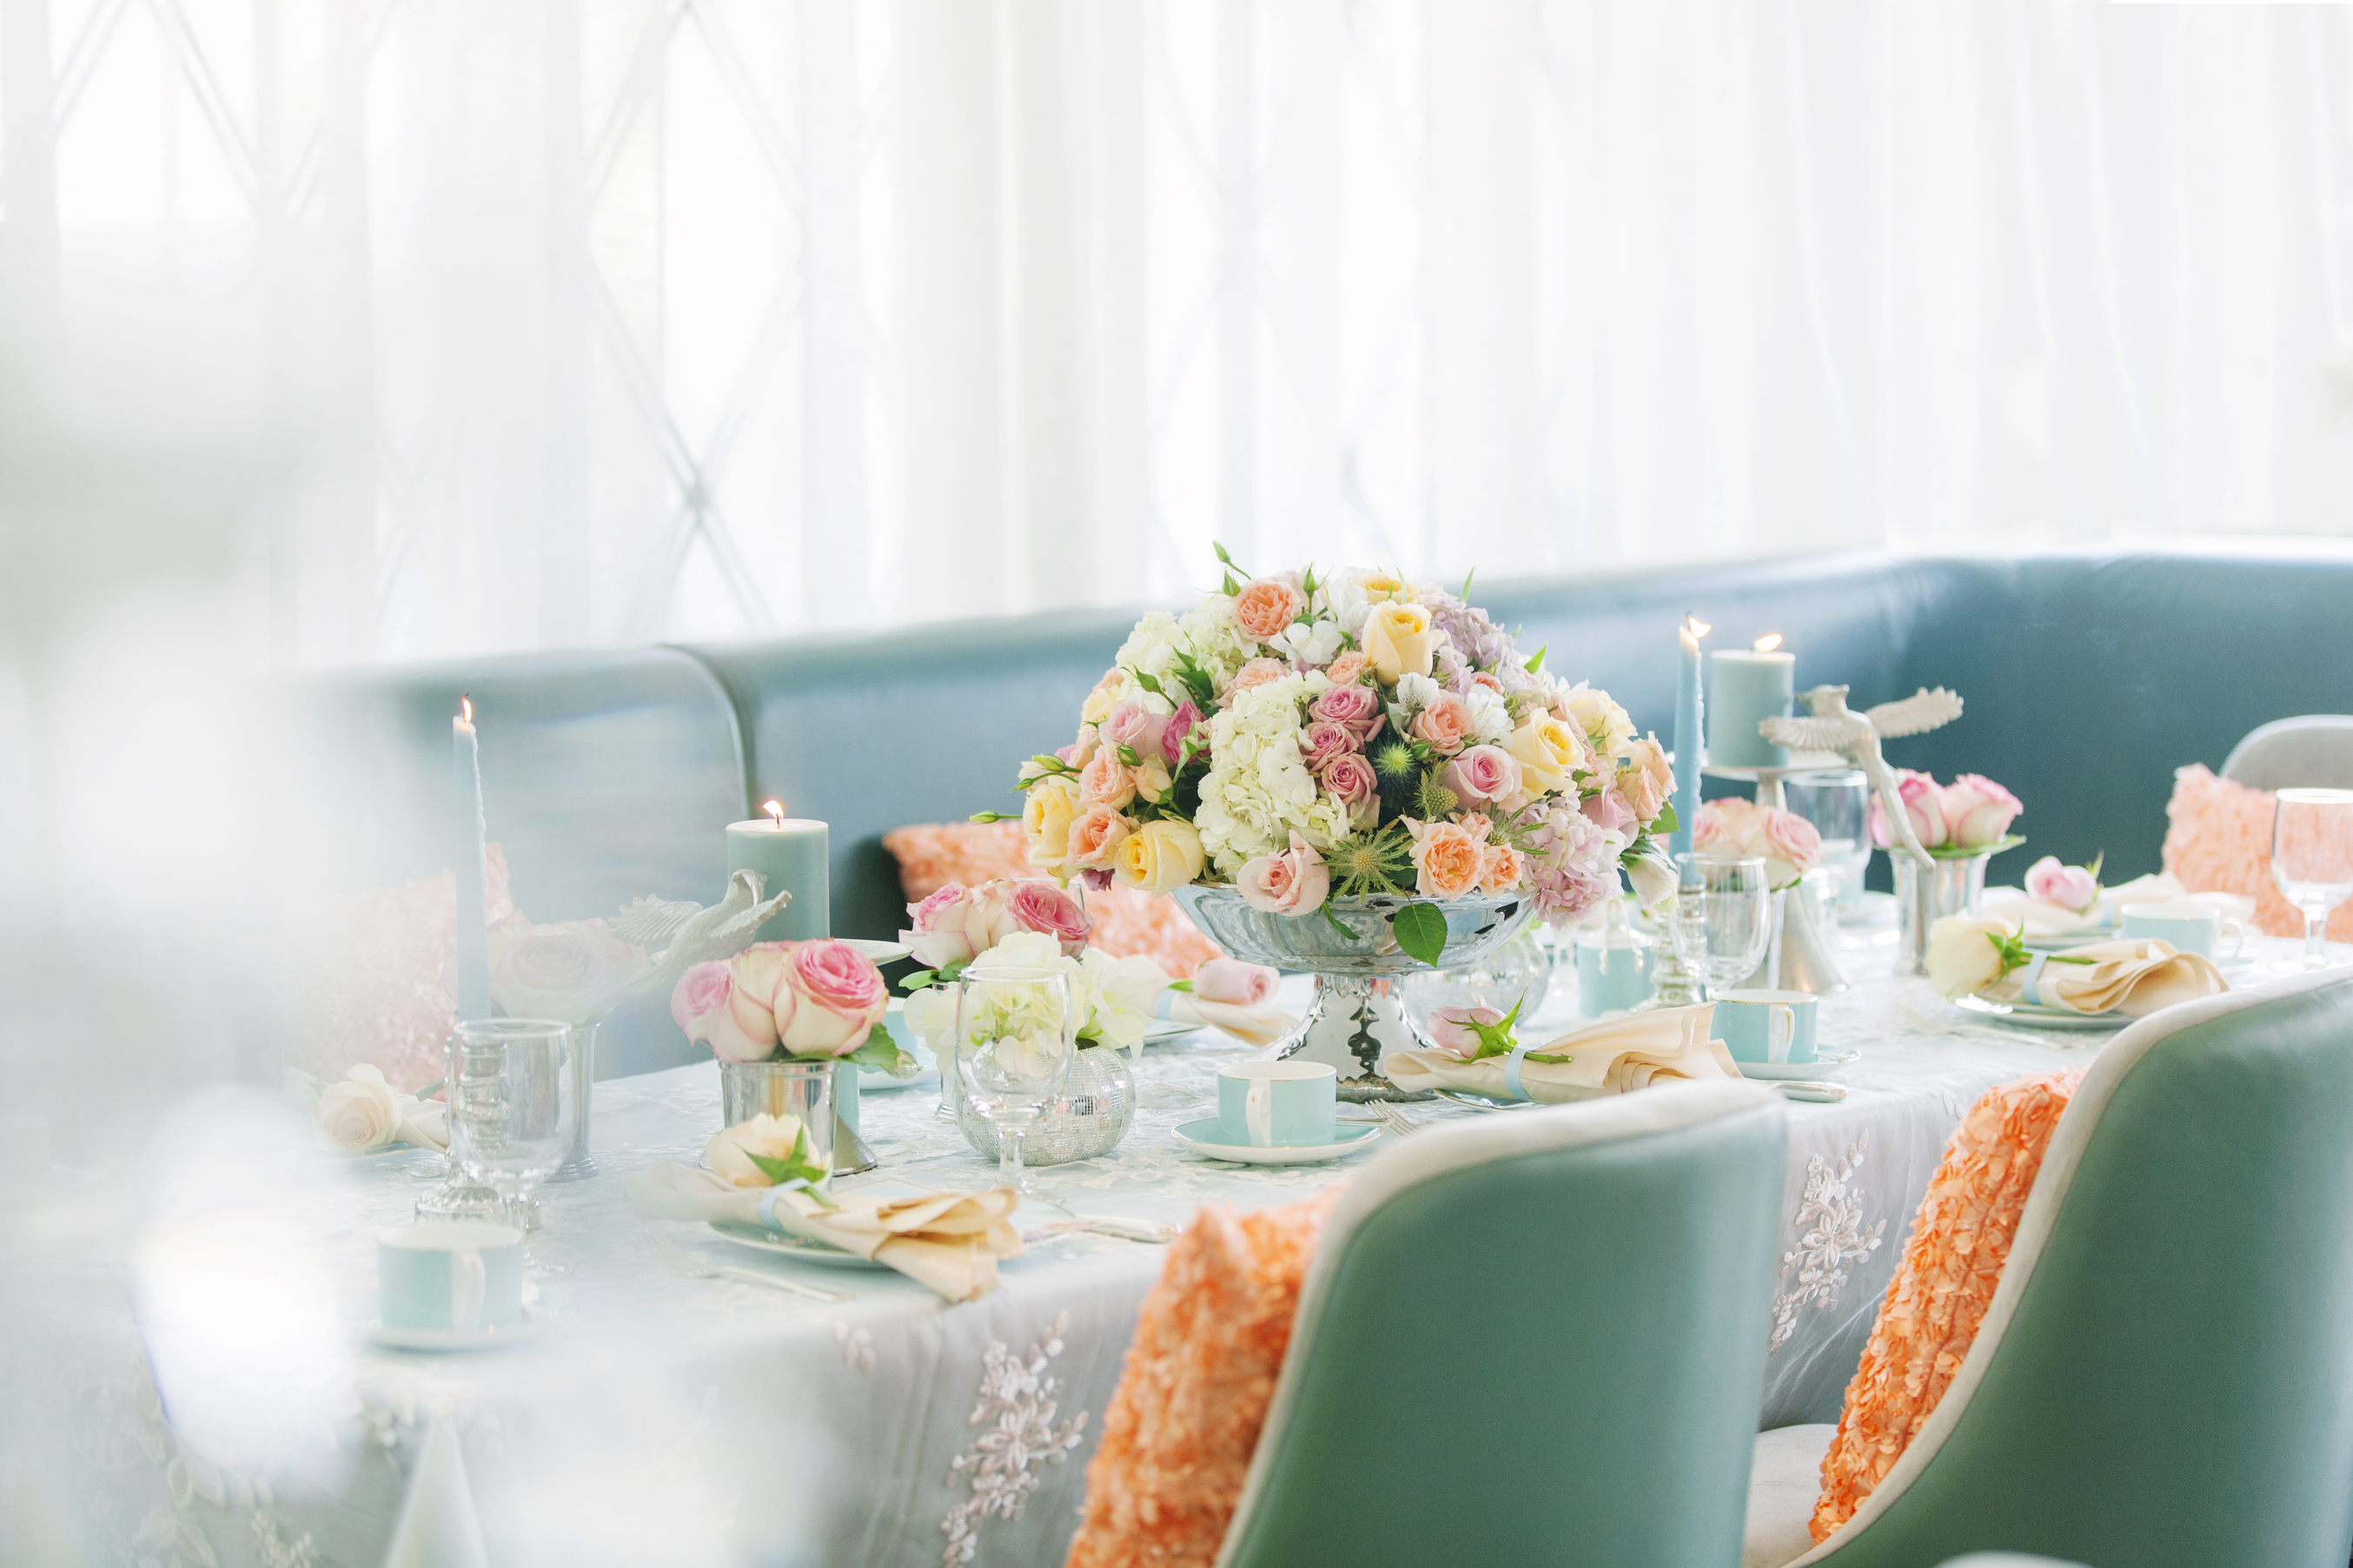 A Pretty Pastel Wedding Theme Photo Shoot by The Day - Arabia Weddings